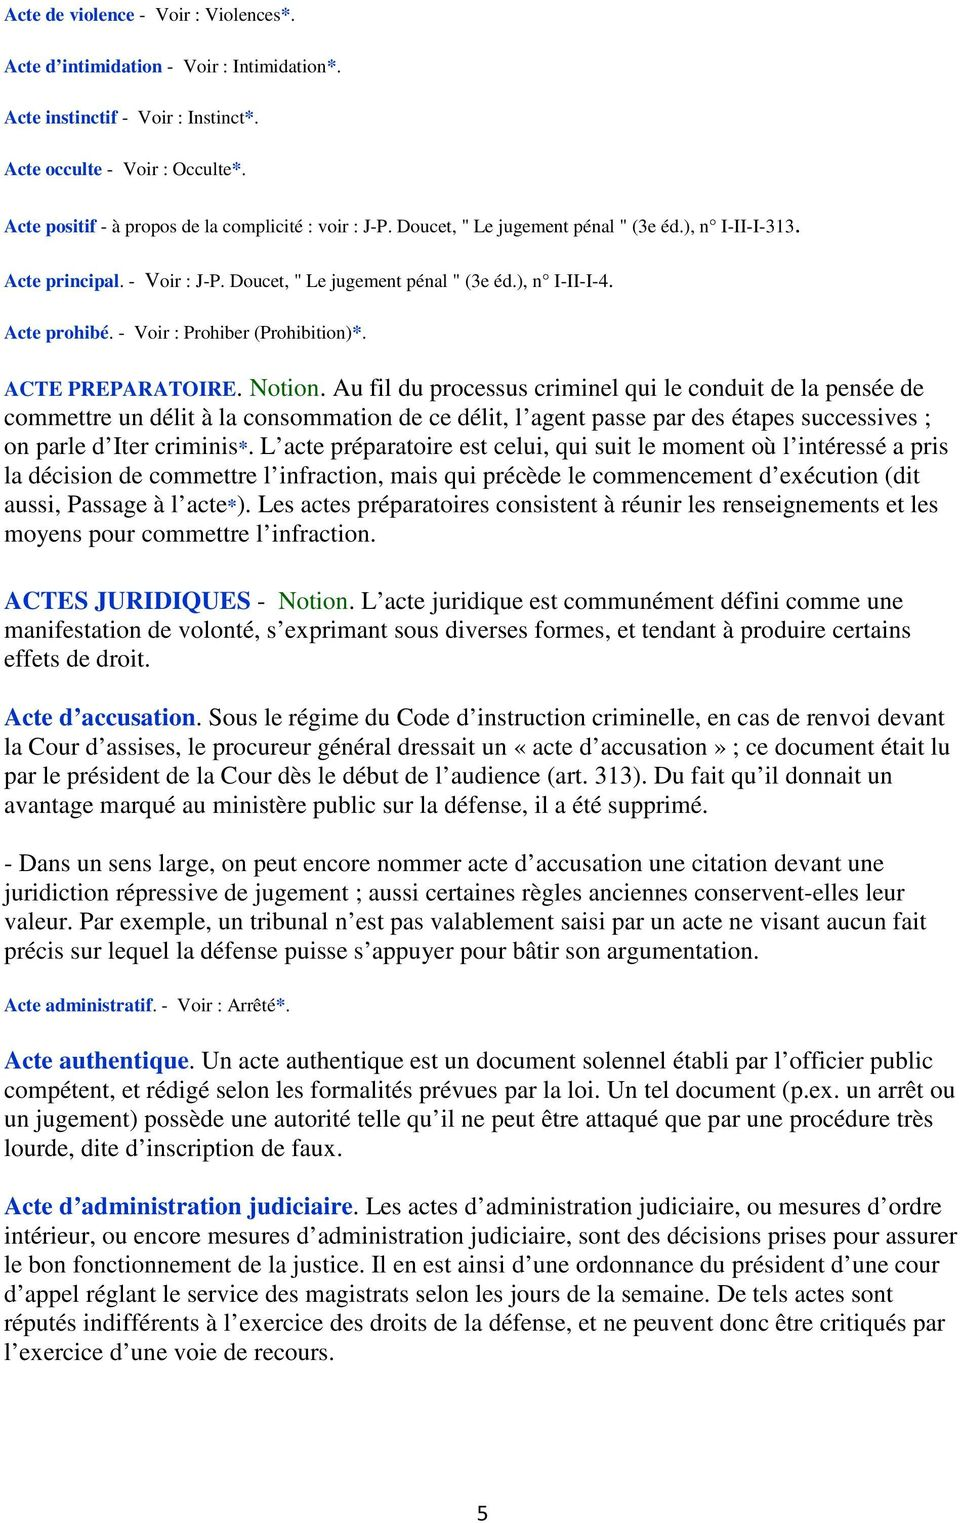 Acte prohibé. - Voir : Prohiber (Prohibition)*. ACTE PREPARATOIRE. Notion.